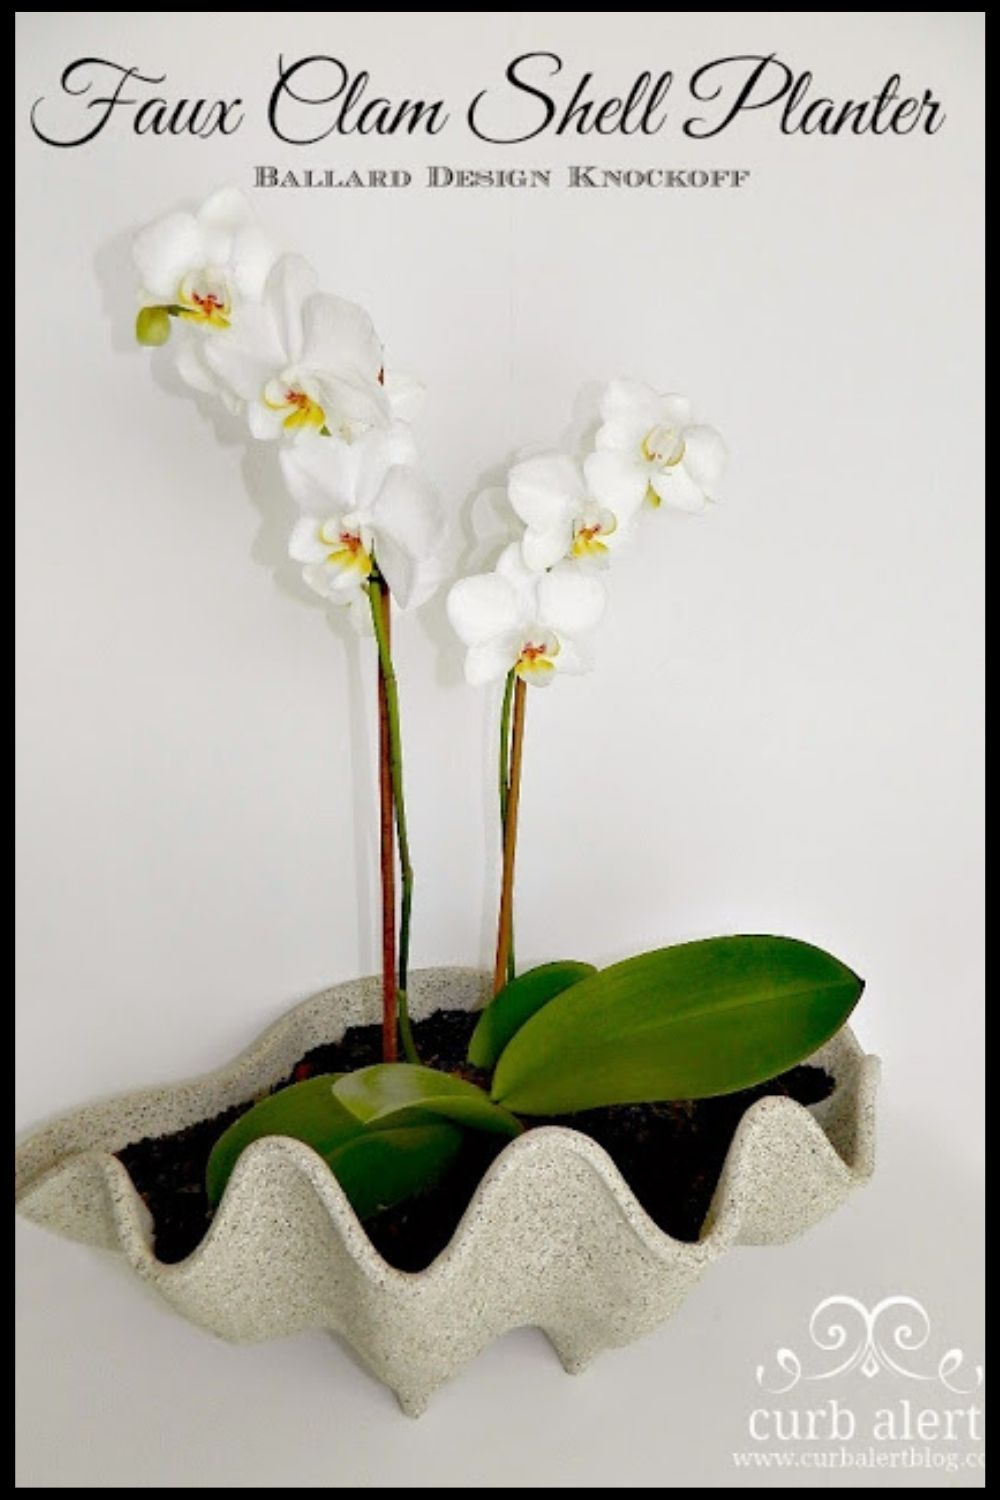 Faux clam shell planter